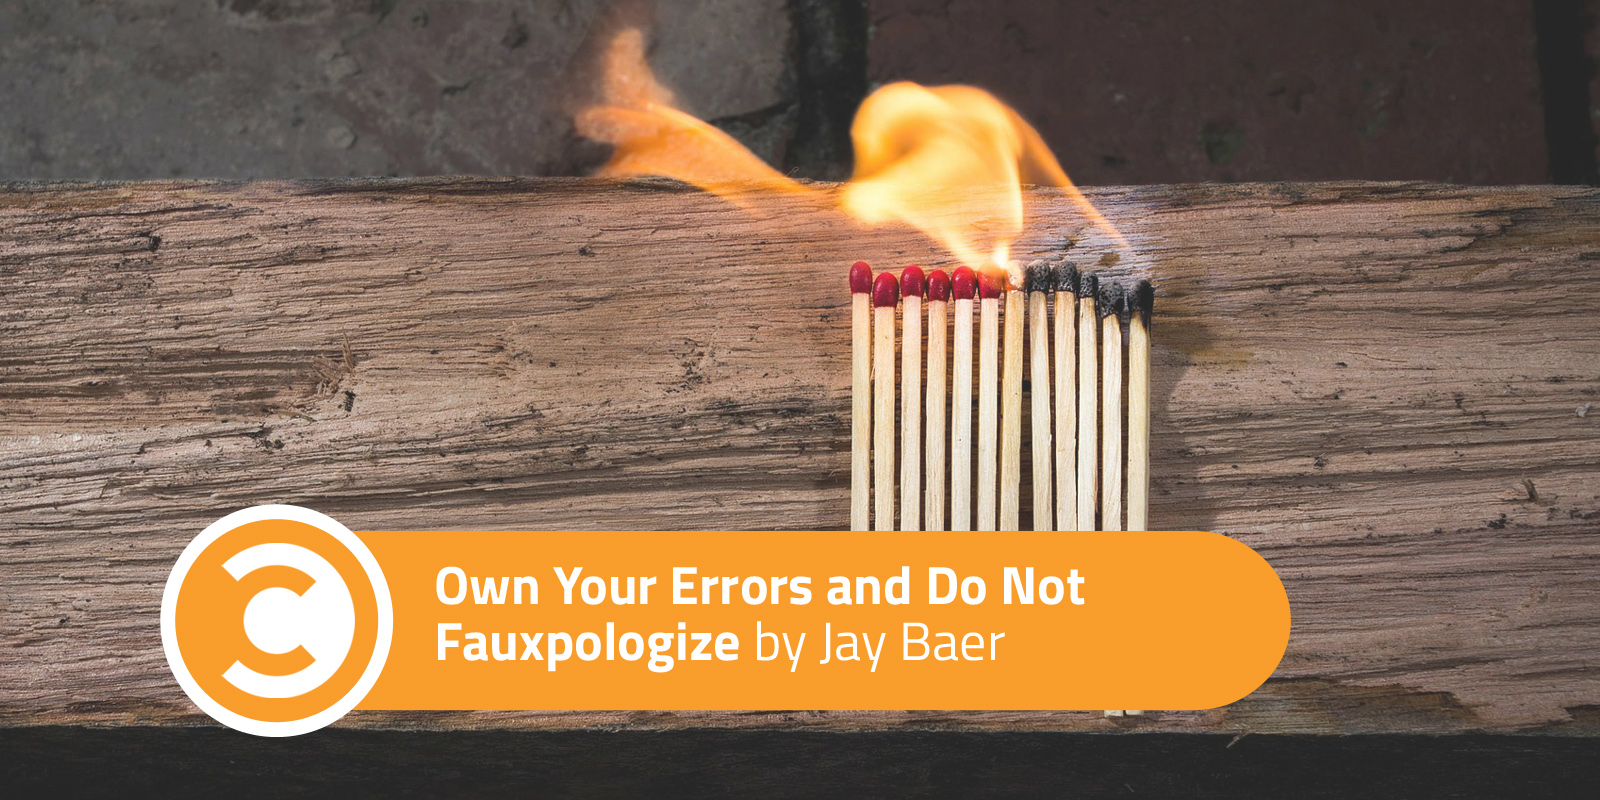 Own Your Errors and Do Not Fauxpologize